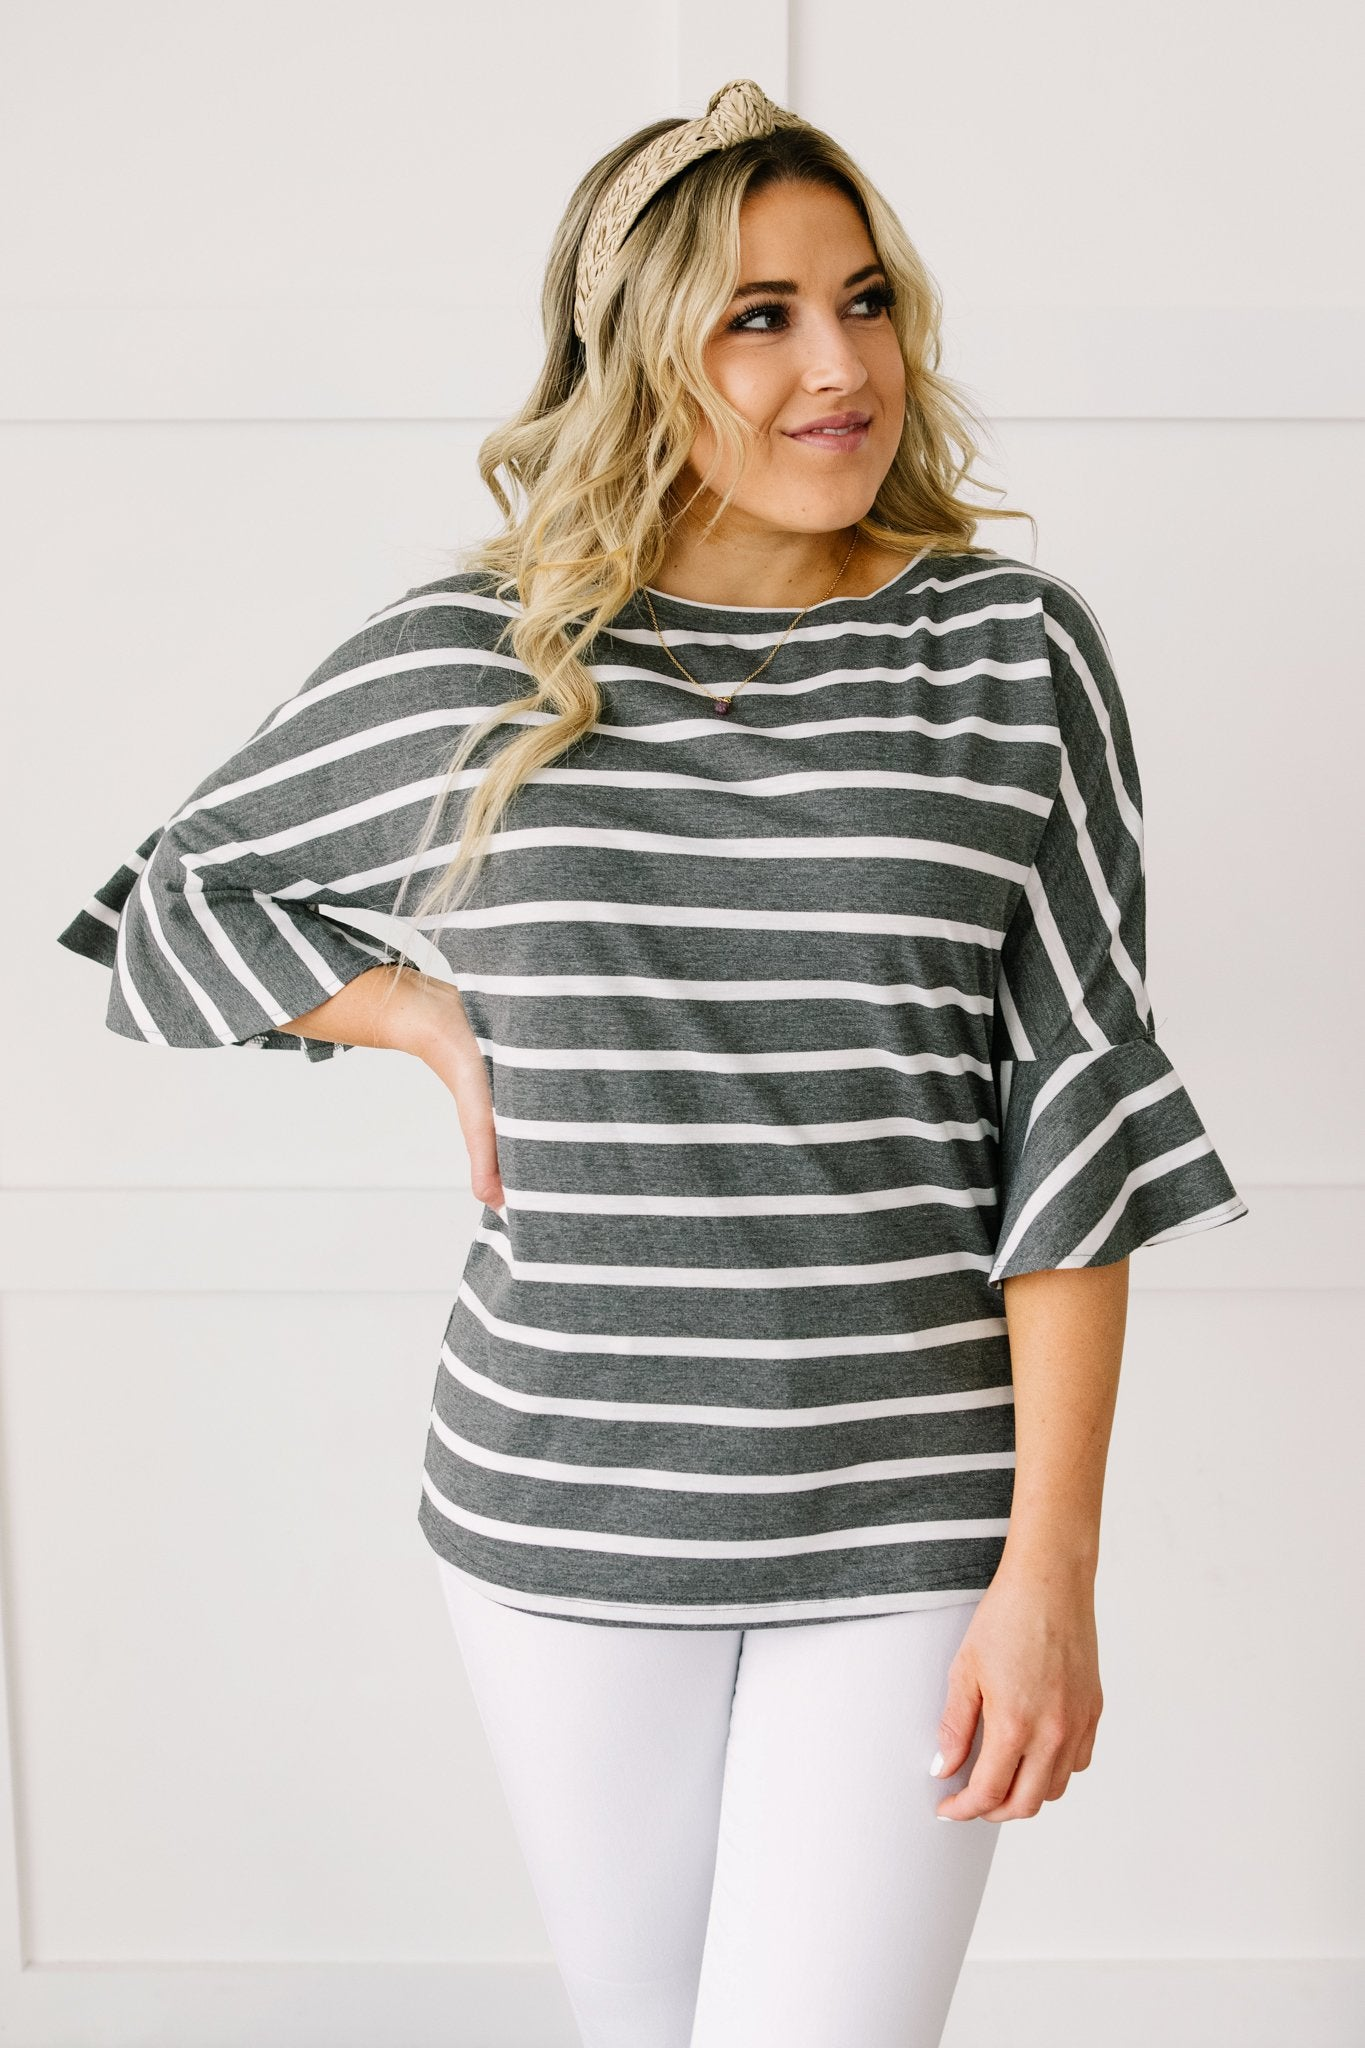 Every Direction Top in Charcoal